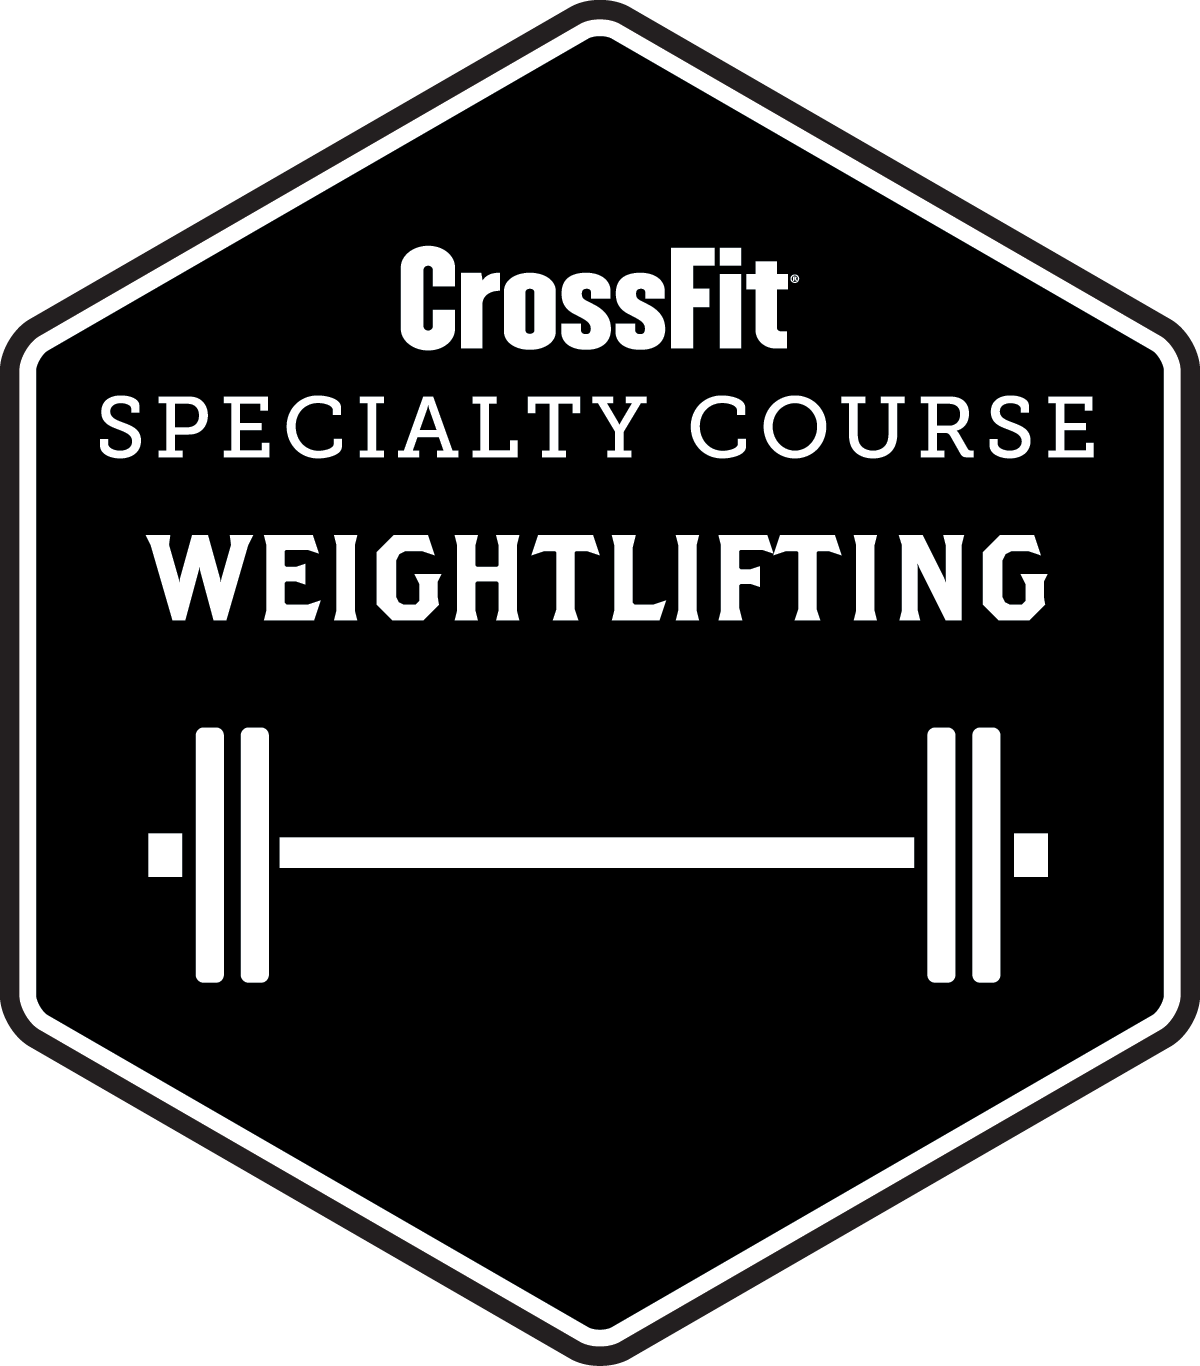 CrossFit Specialty Course: Weightlifting